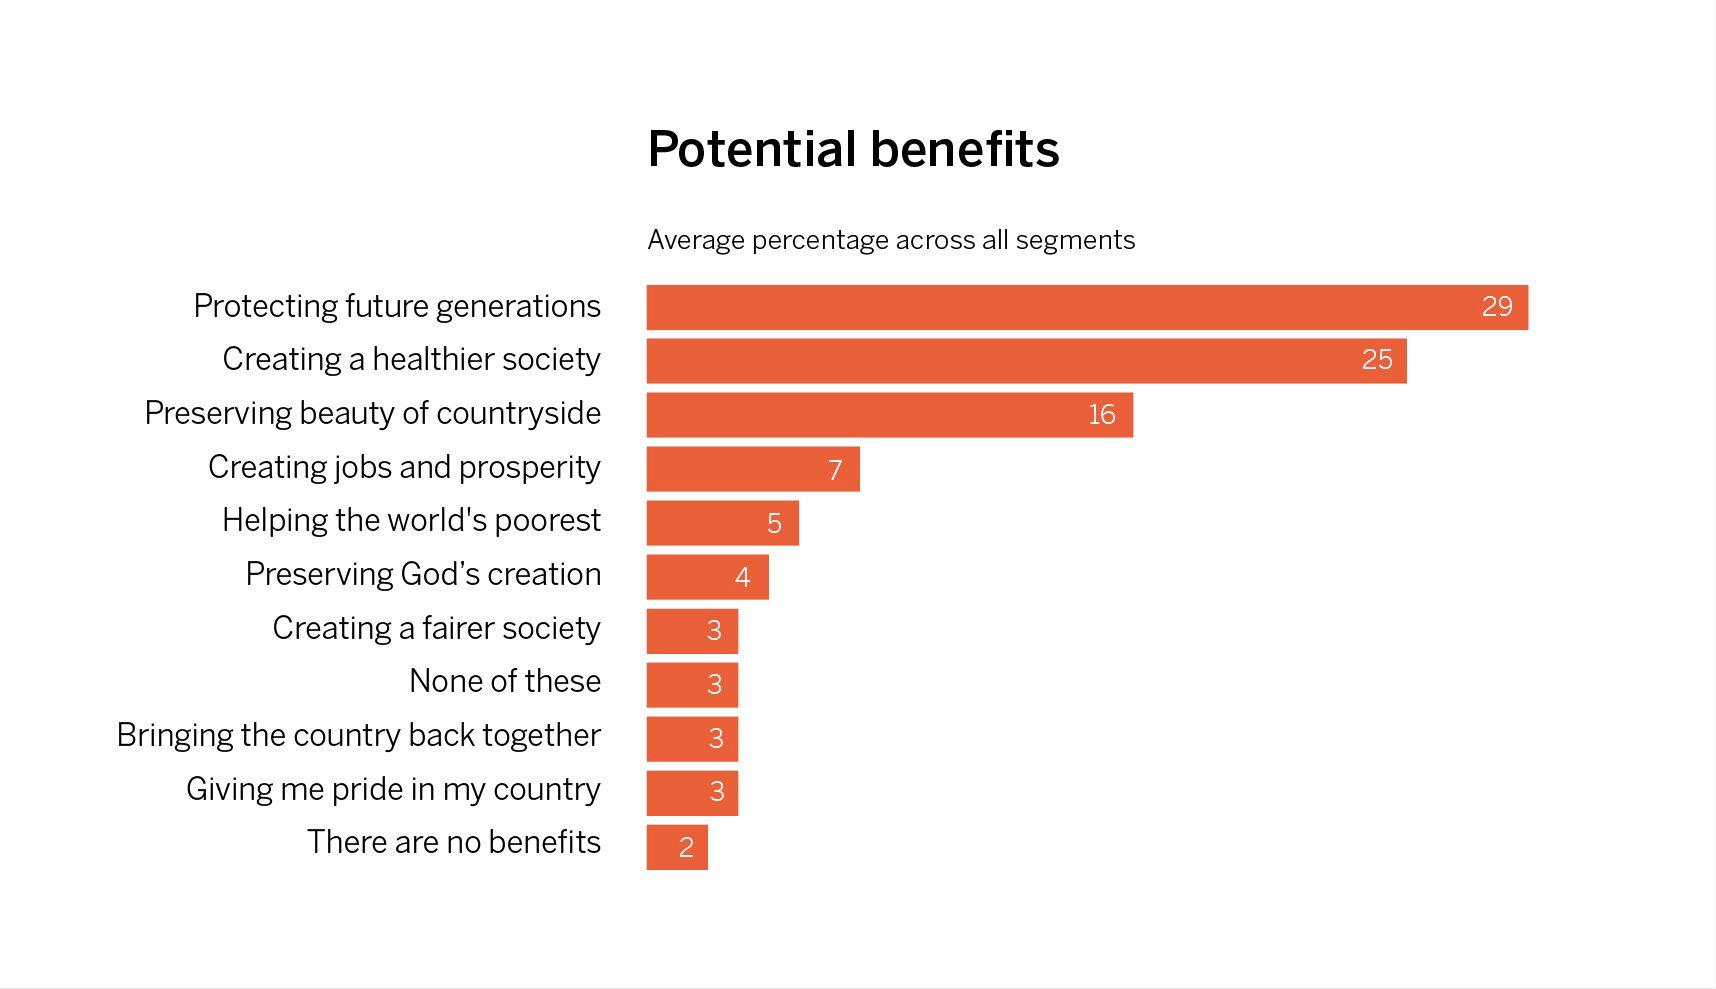 Potential benefits of addressing climate change, average percentage from each segment